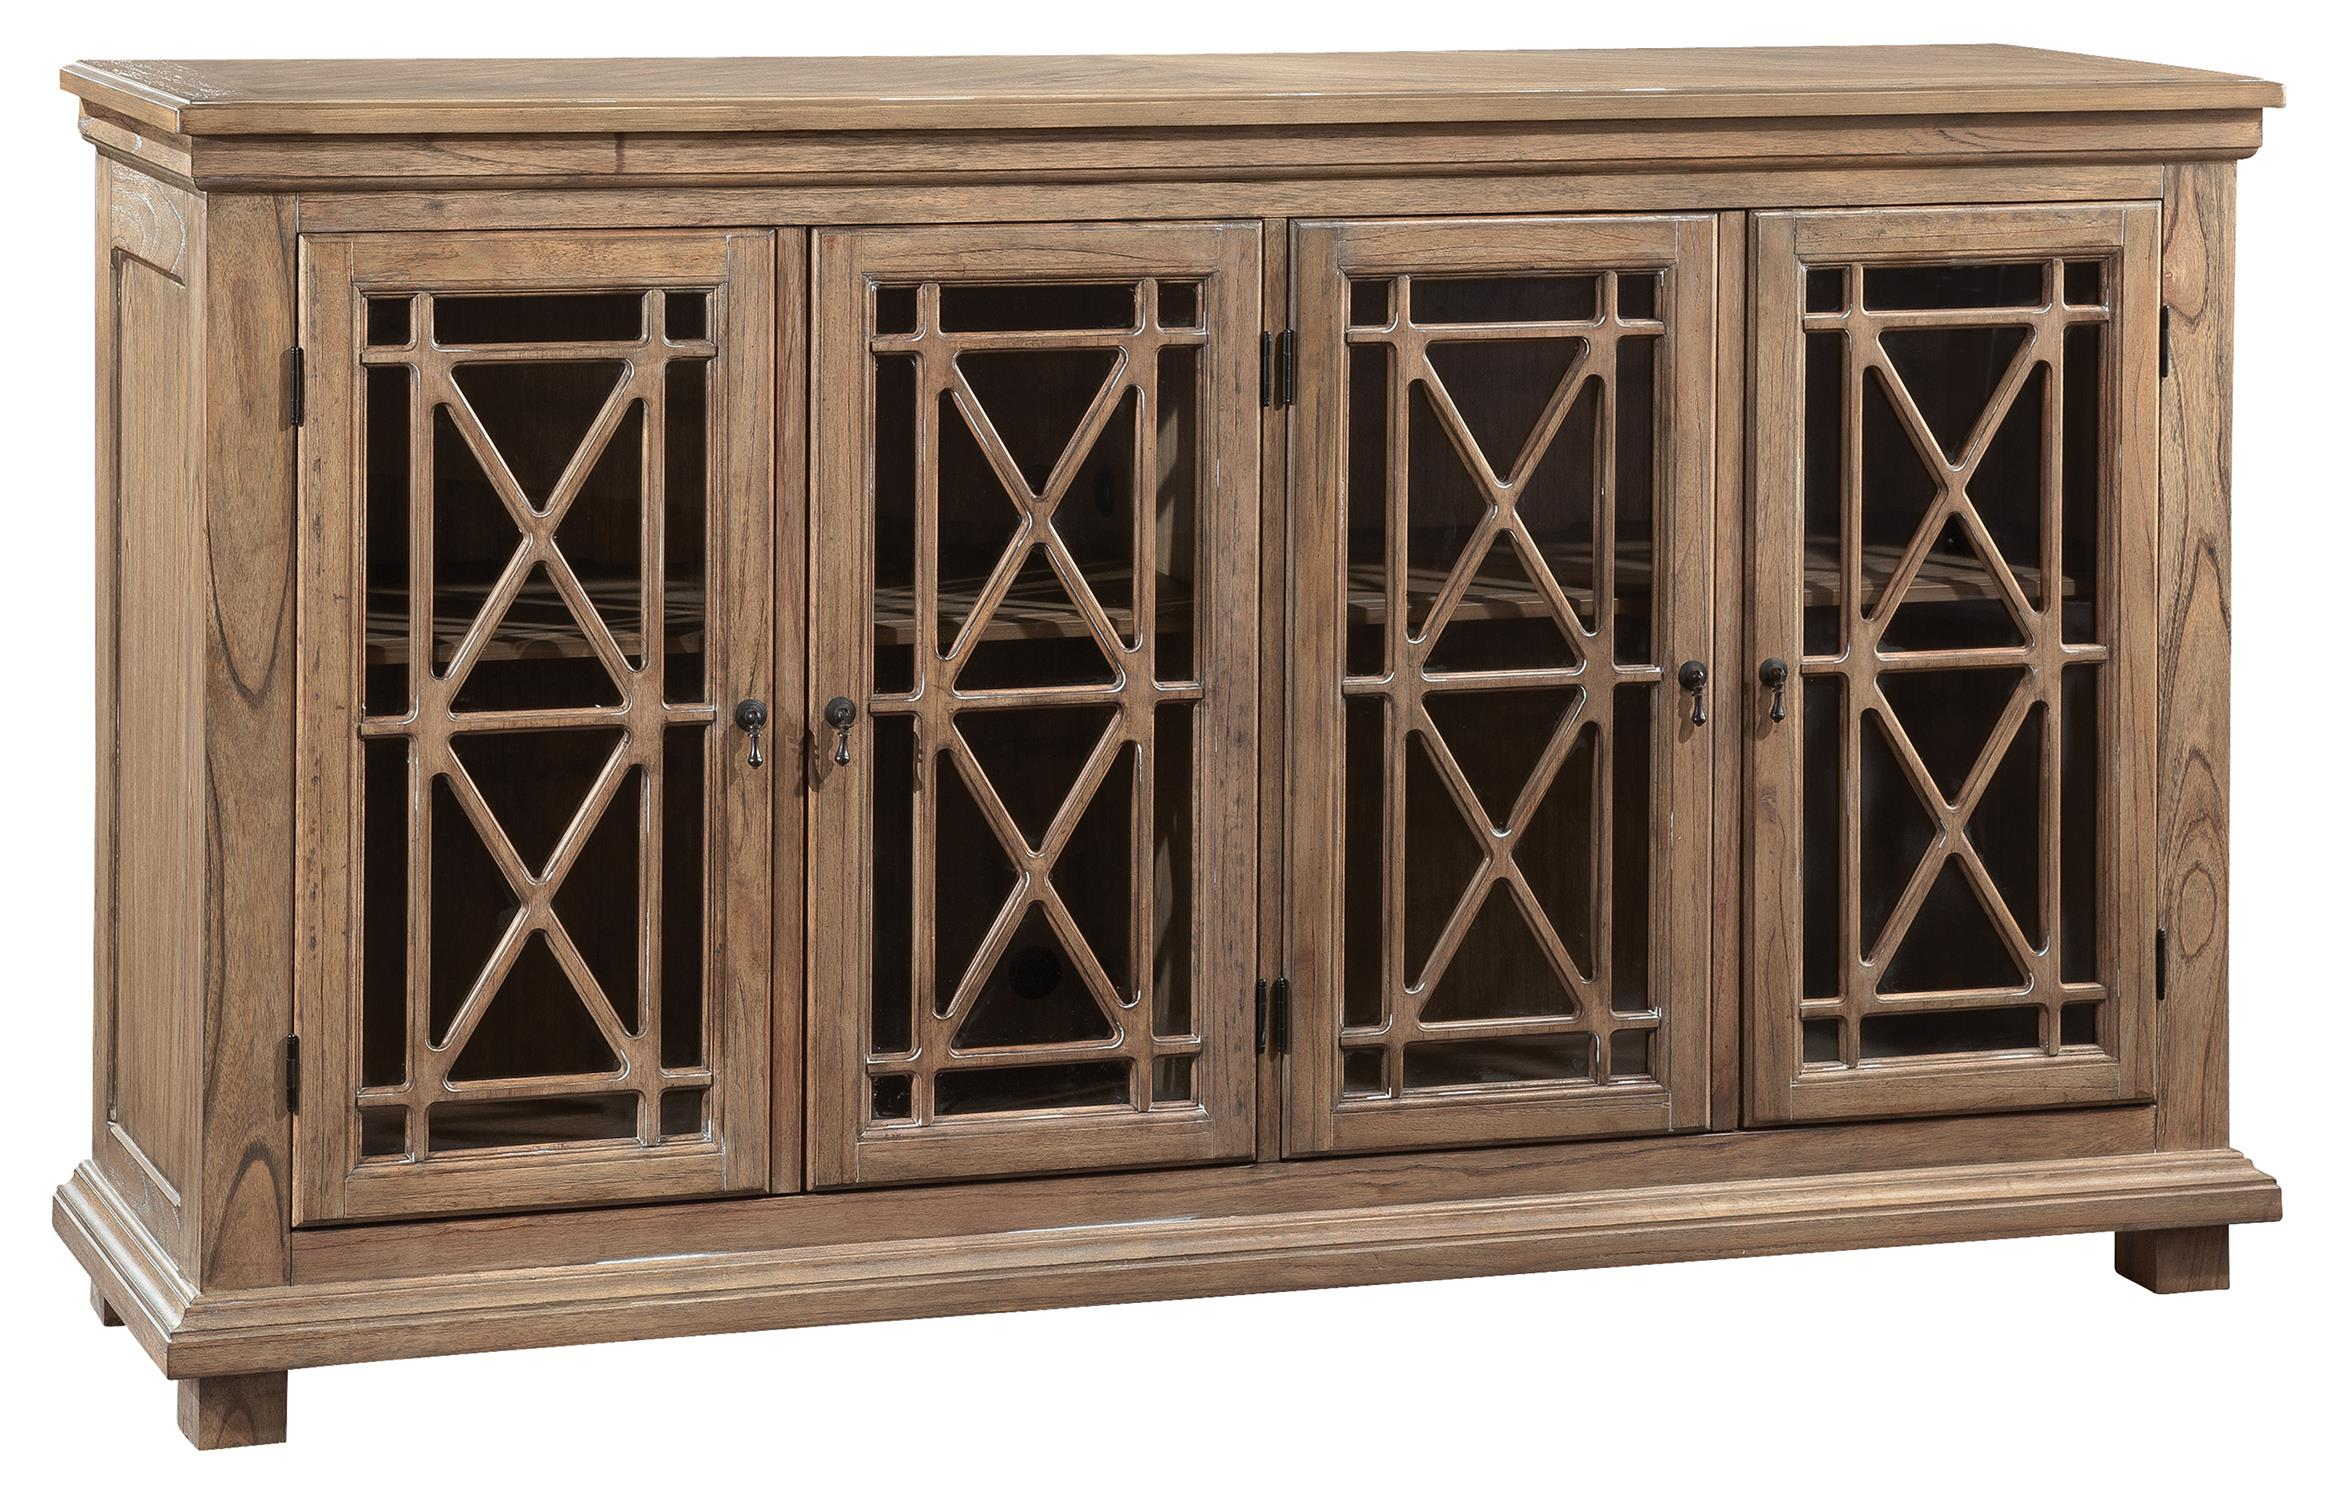 Accents and Occassional Lattice Front Entertainment Console by Hekman at Sprintz Furniture